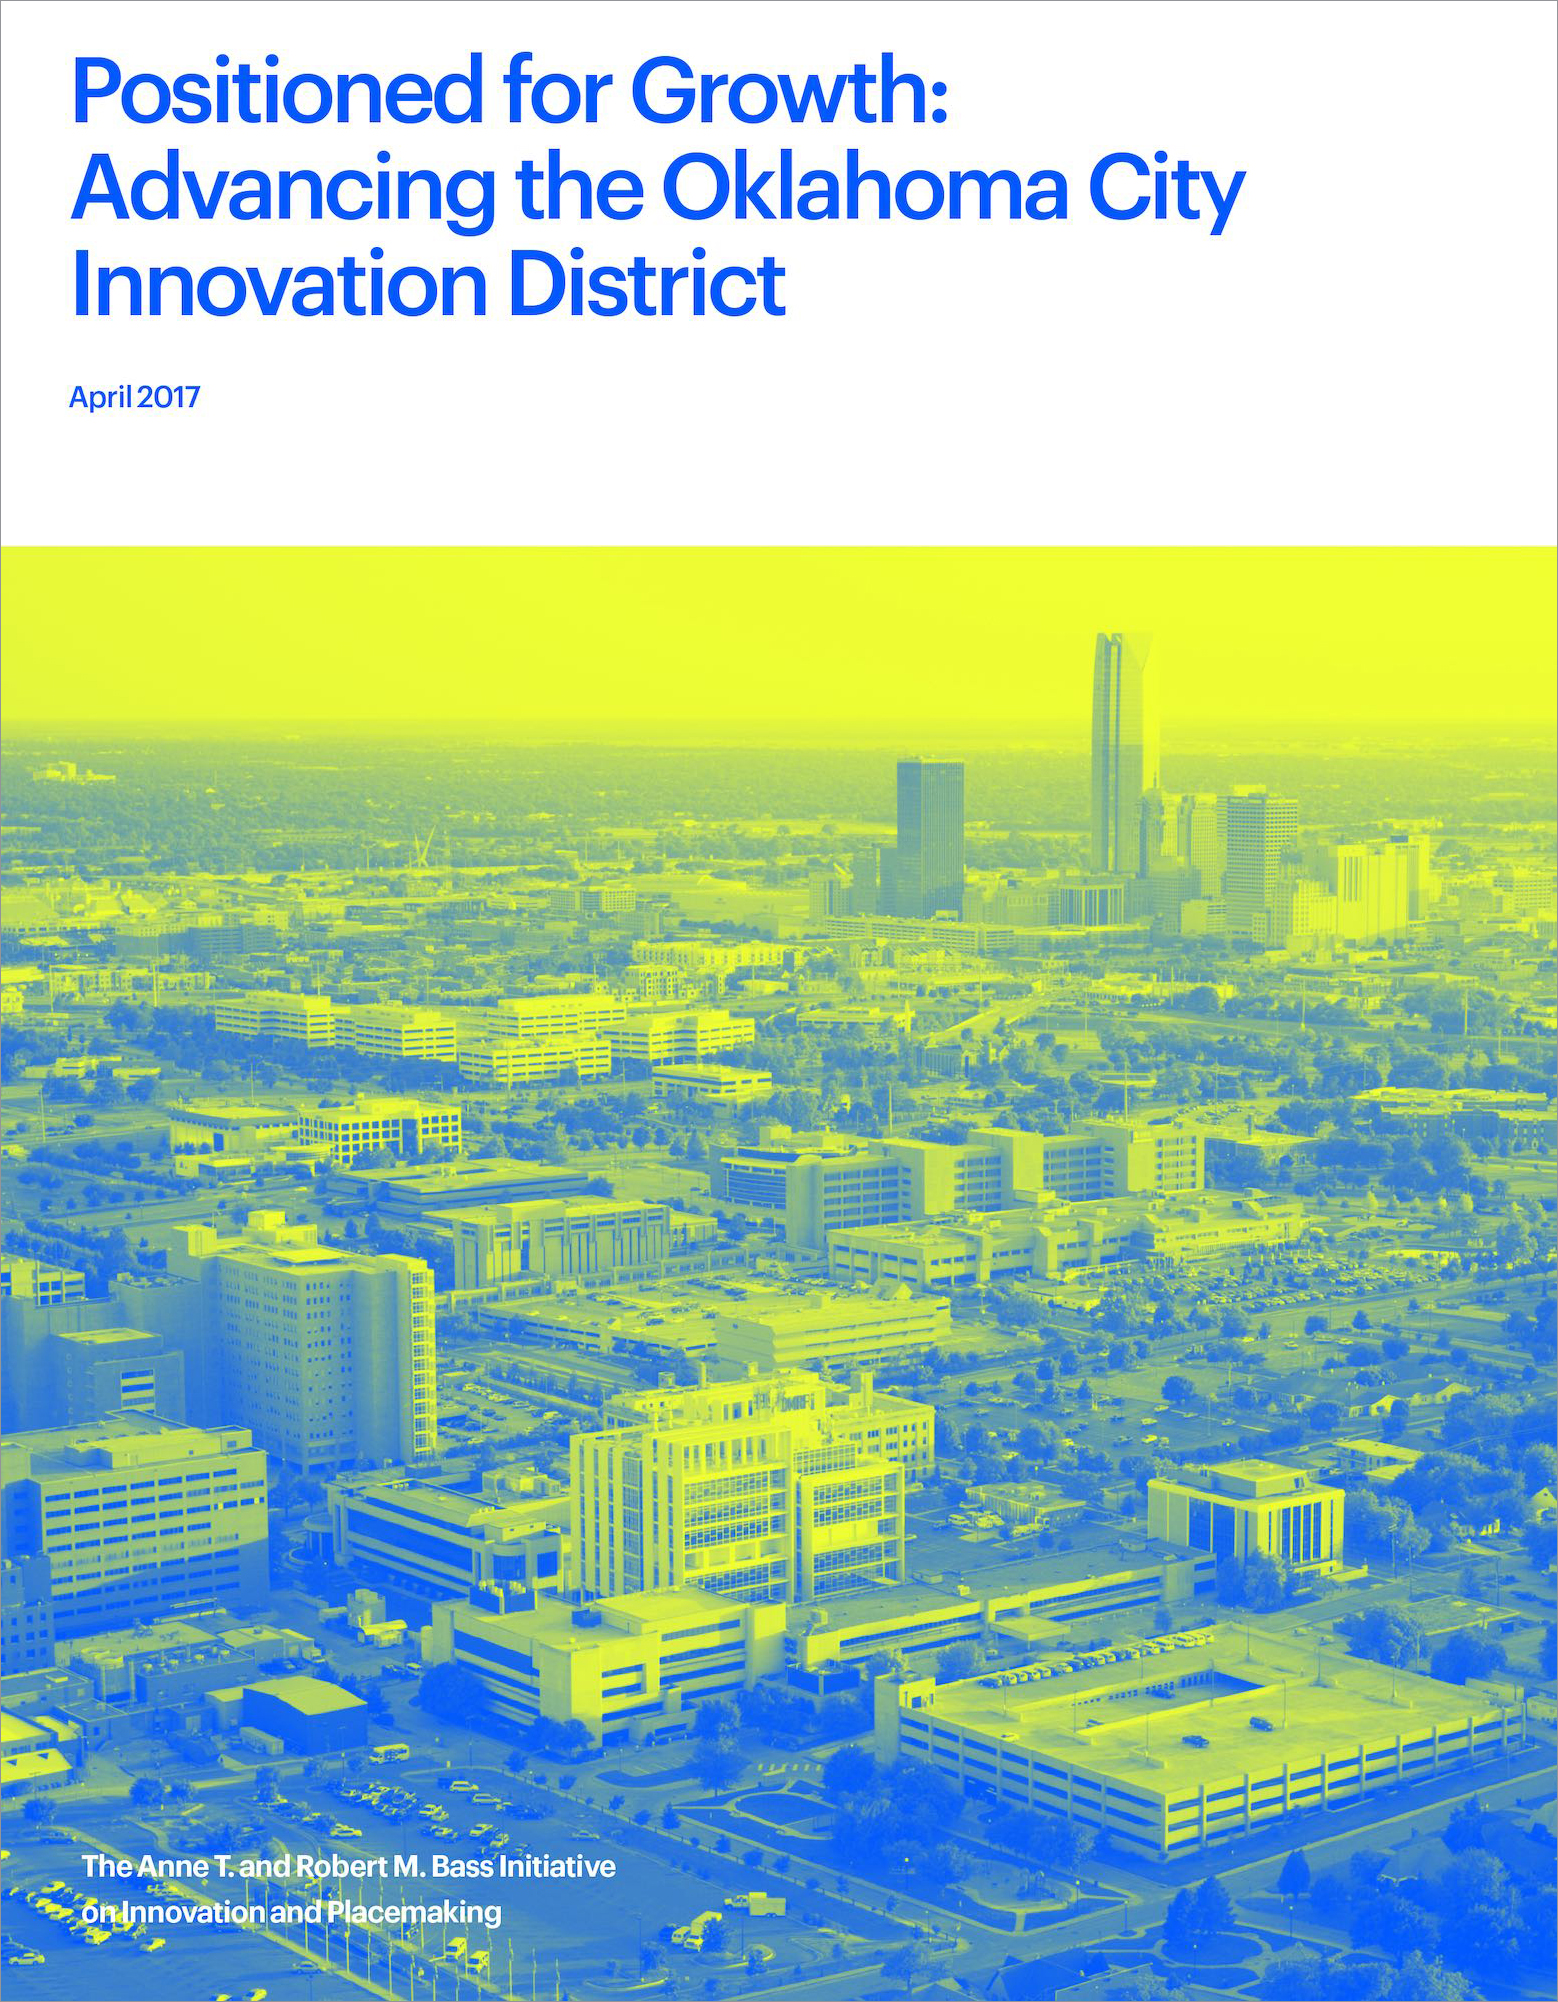 Report: Positioned for Growth: Advancing the Oklahoma City Innovation District